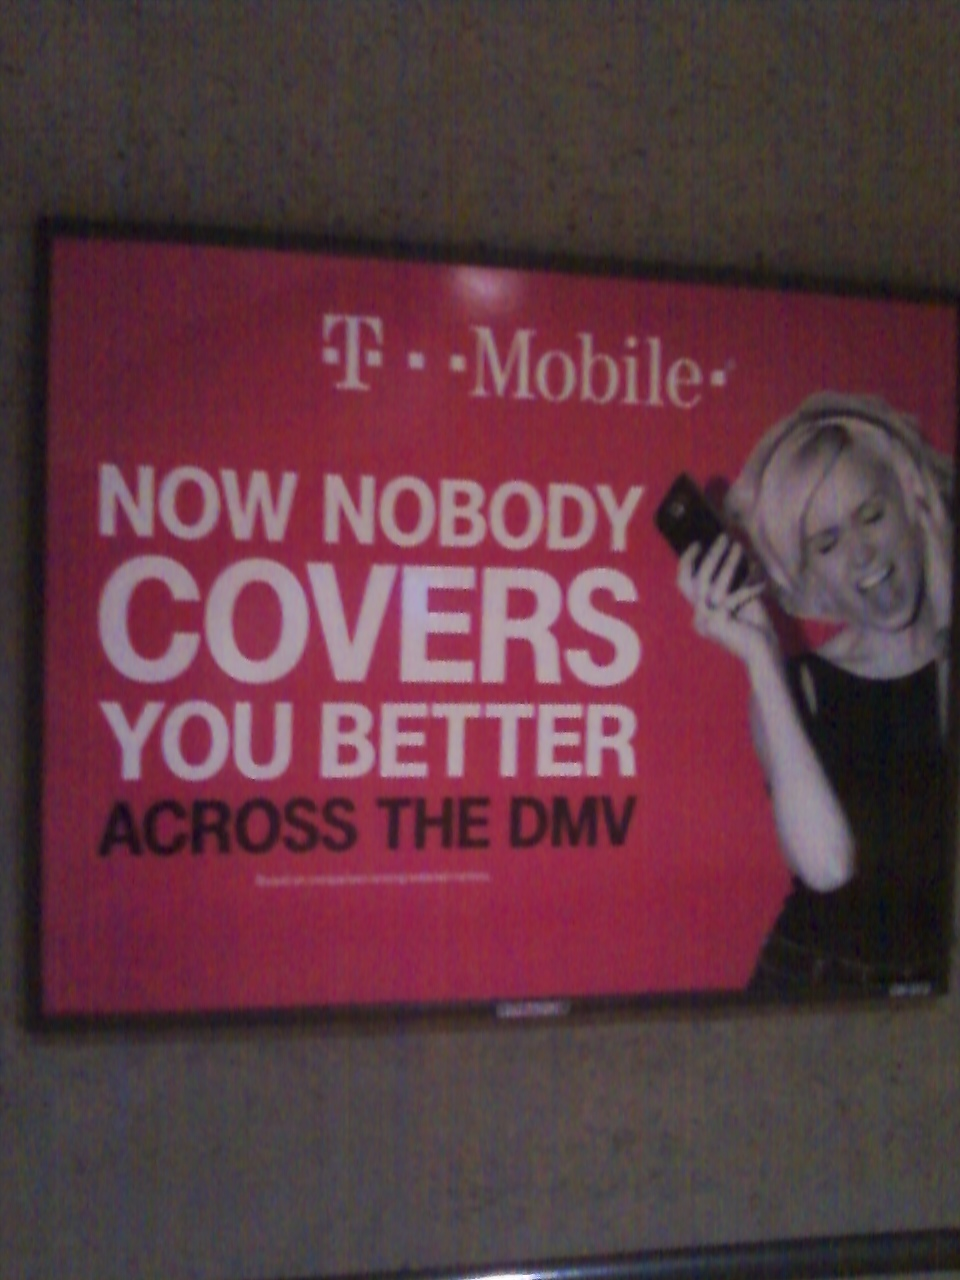 WMATA/DC Metro T-Mobile Advertisement boasting about T-Mobile's  superior coverage in the DC Metro area. But we've had more drops with  TMO in downtown DC, as well as poor coverage spots (like at the outdoor  lot of the Georgetown Safeway) than with any other carrier, so T-Mobile's  claims are dubious at best. For further details, please visit  www.wirelessnotes.org.